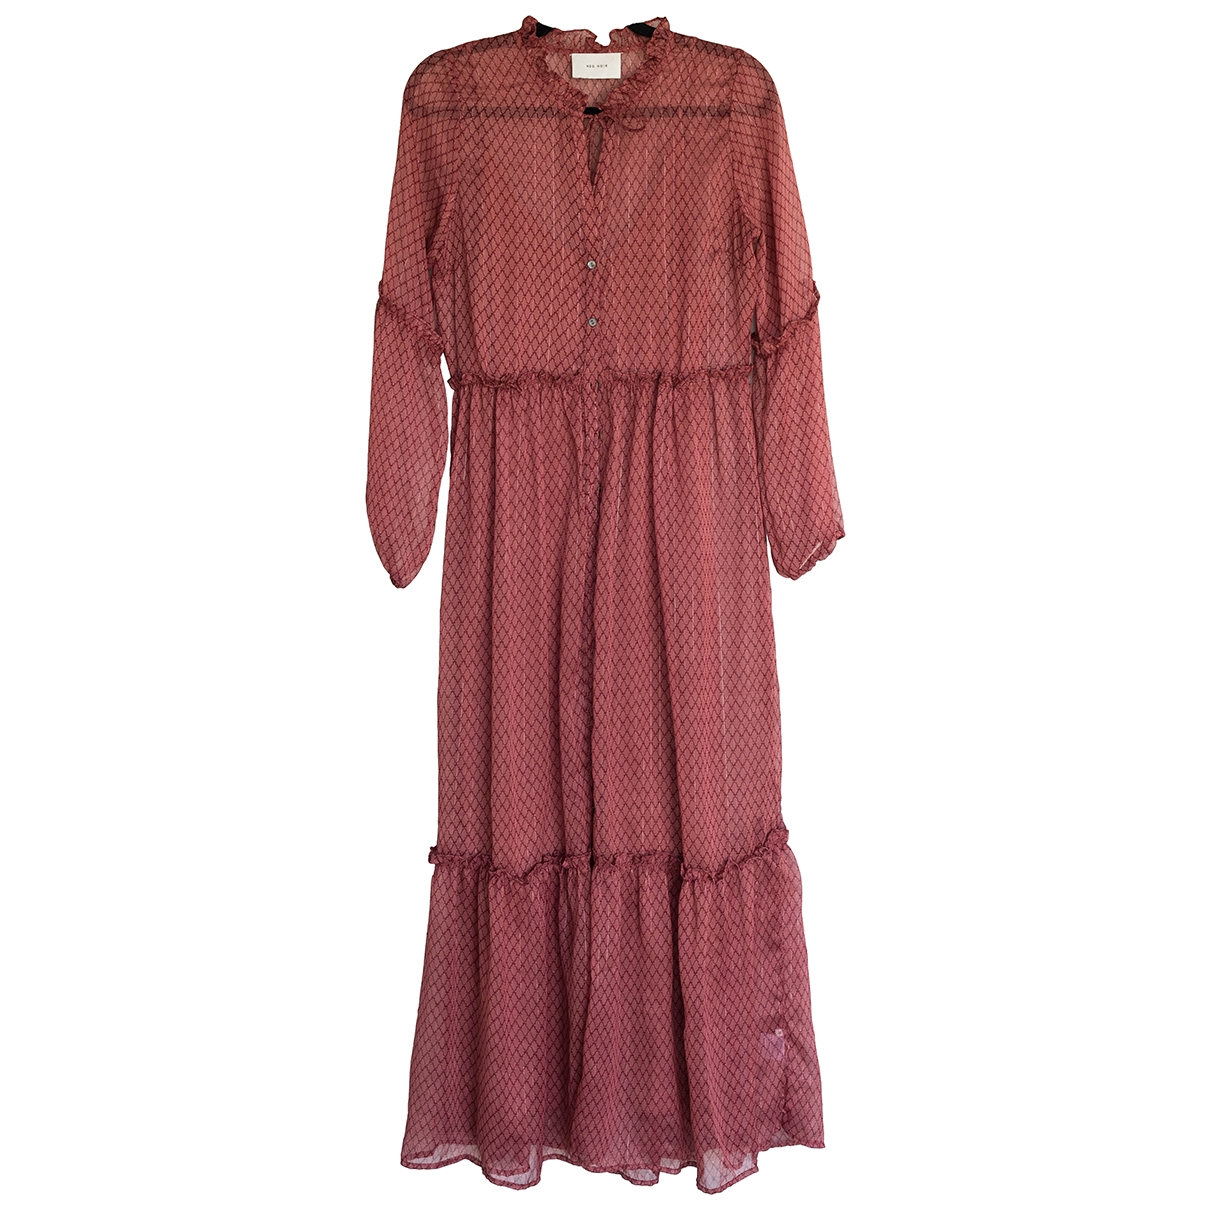 Non Signe / Unsigned Hippie Chic Kleid in Polyester